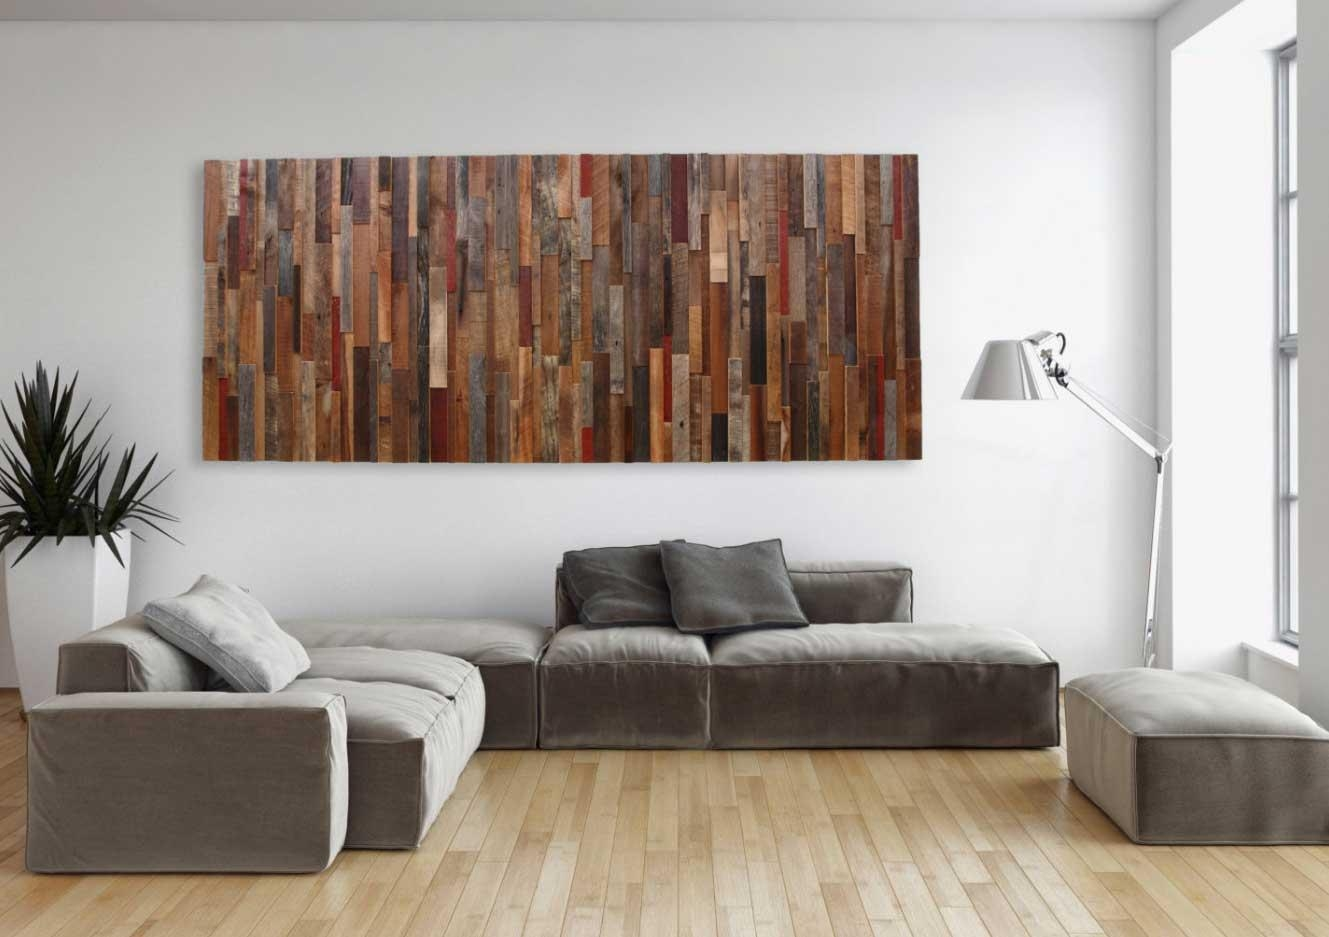 Oversized Wall Art Contemporary Sculpture Ideas | Home Interior Intended For Oversized Wall Art Contemporary (Image 13 of 20)